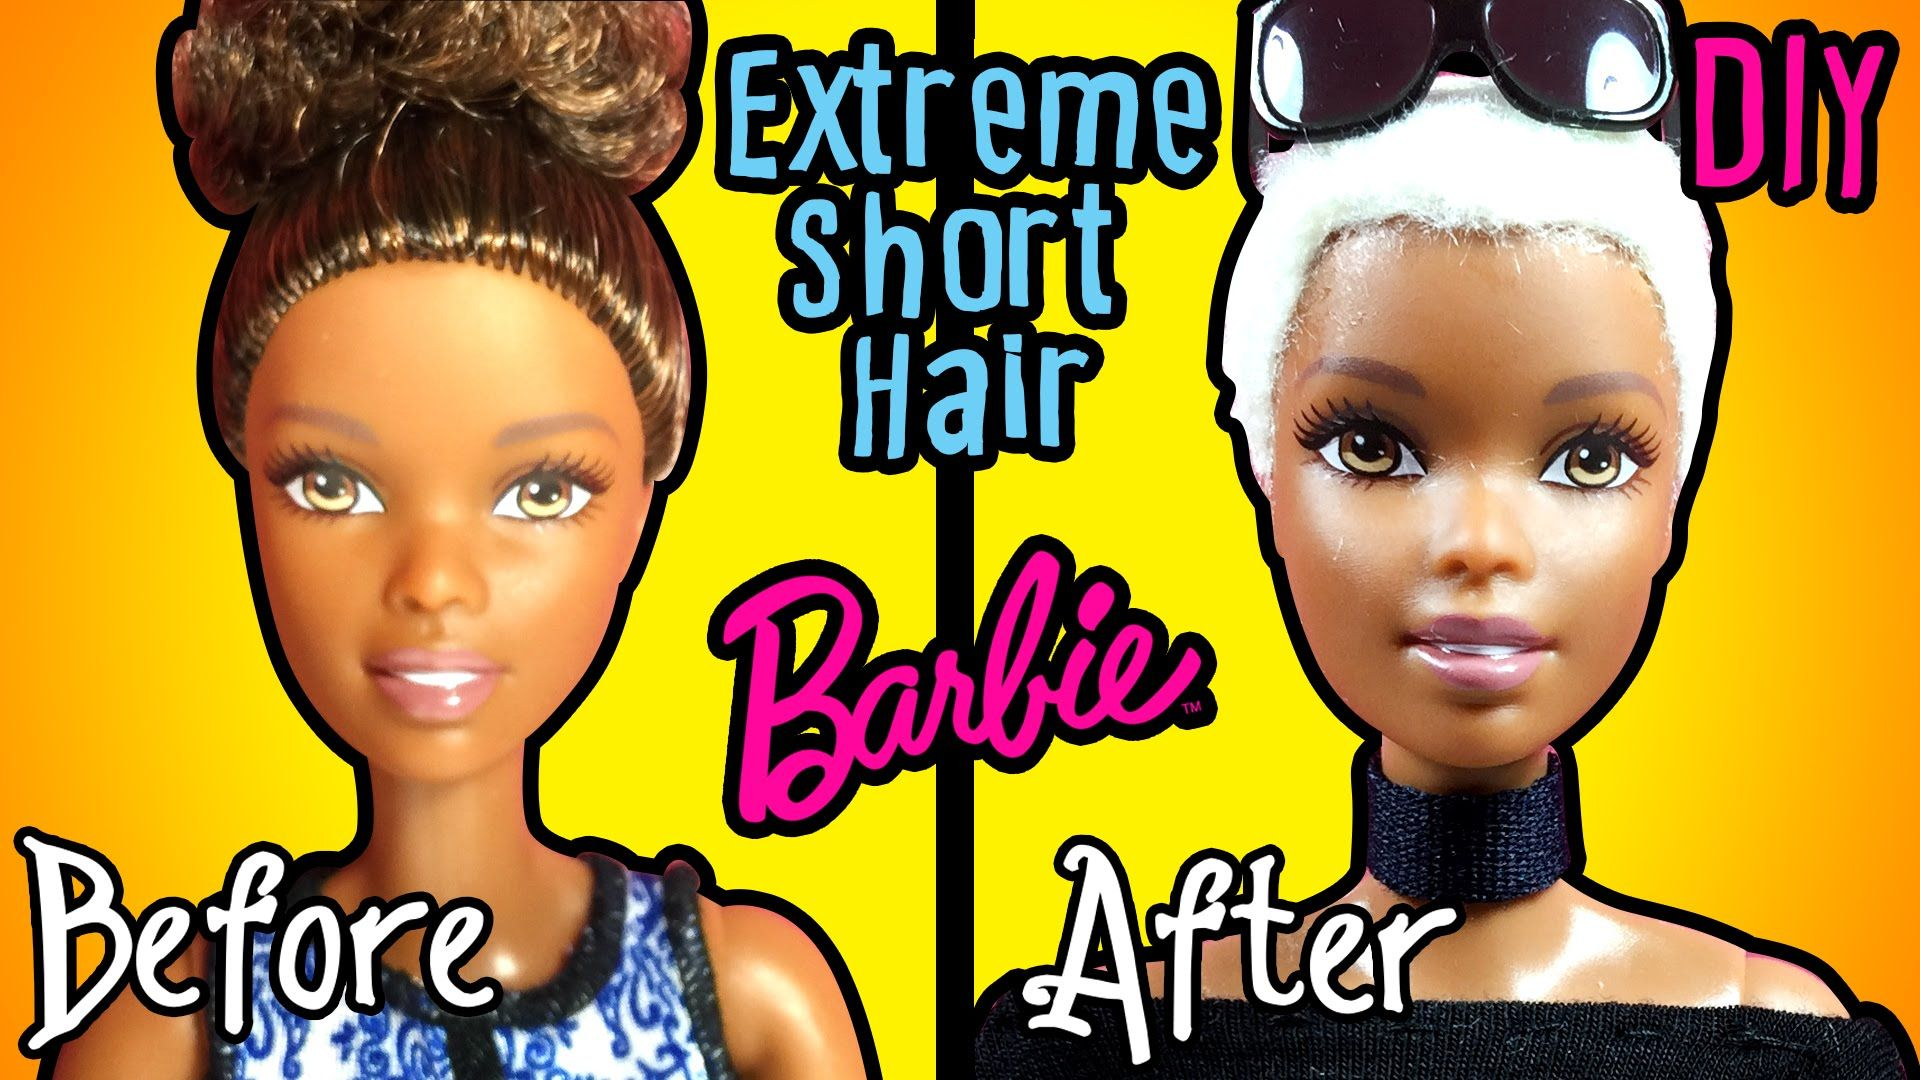 Barbie Hairstyles Gorgeous How To Cut Extreme Short Haircut For Barbie Doll  Diy Doll Hair